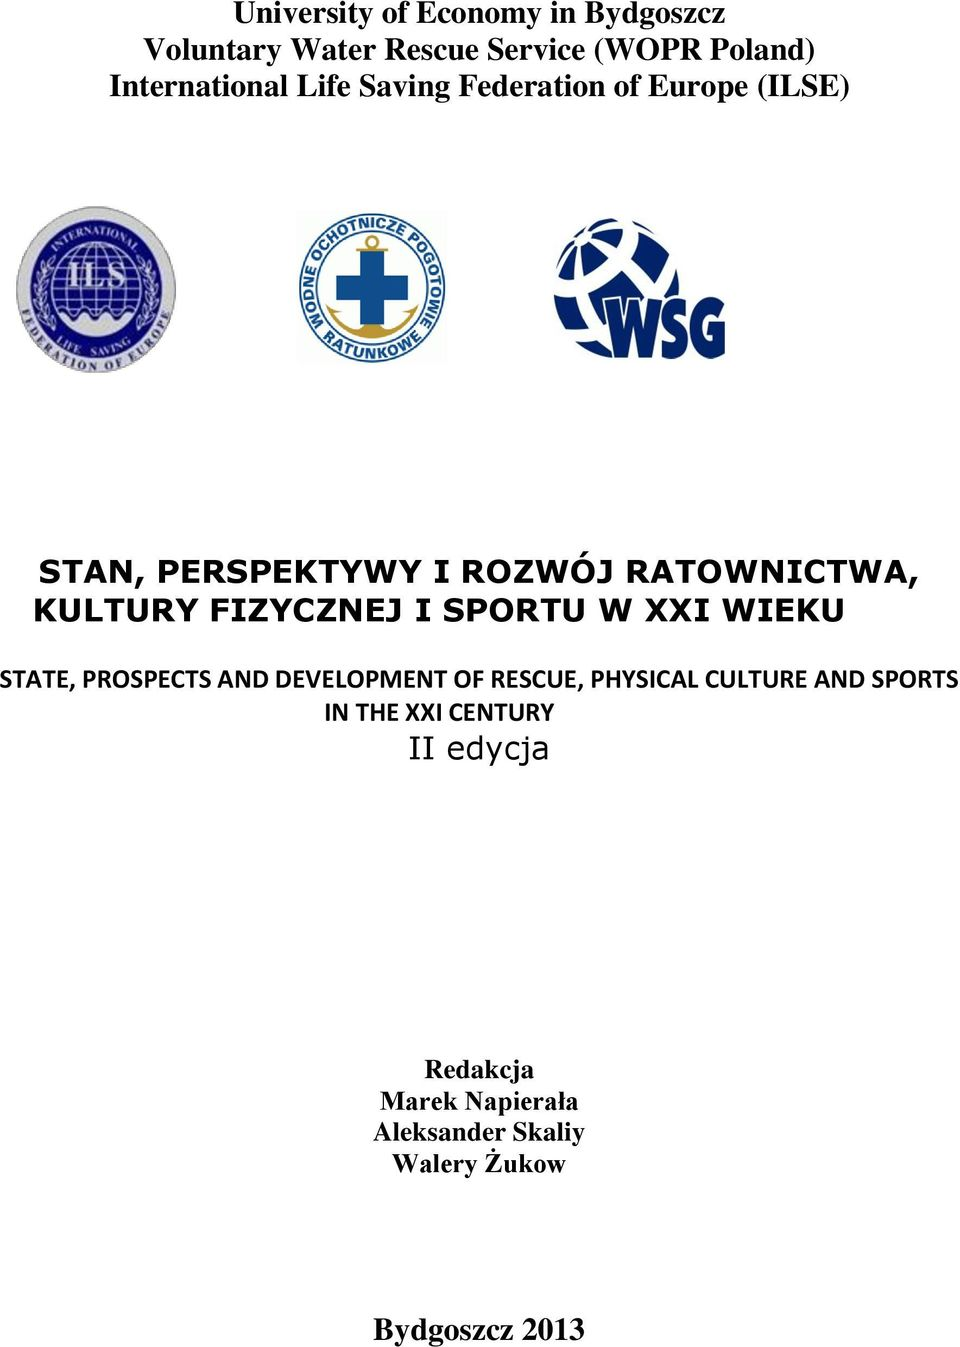 FIZYCZNEJ I SPORTU W XXI WIEKU STATE, PROSPECTS AND DEVELOPMENT OF RESCUE, PHYSICAL CULTURE AND